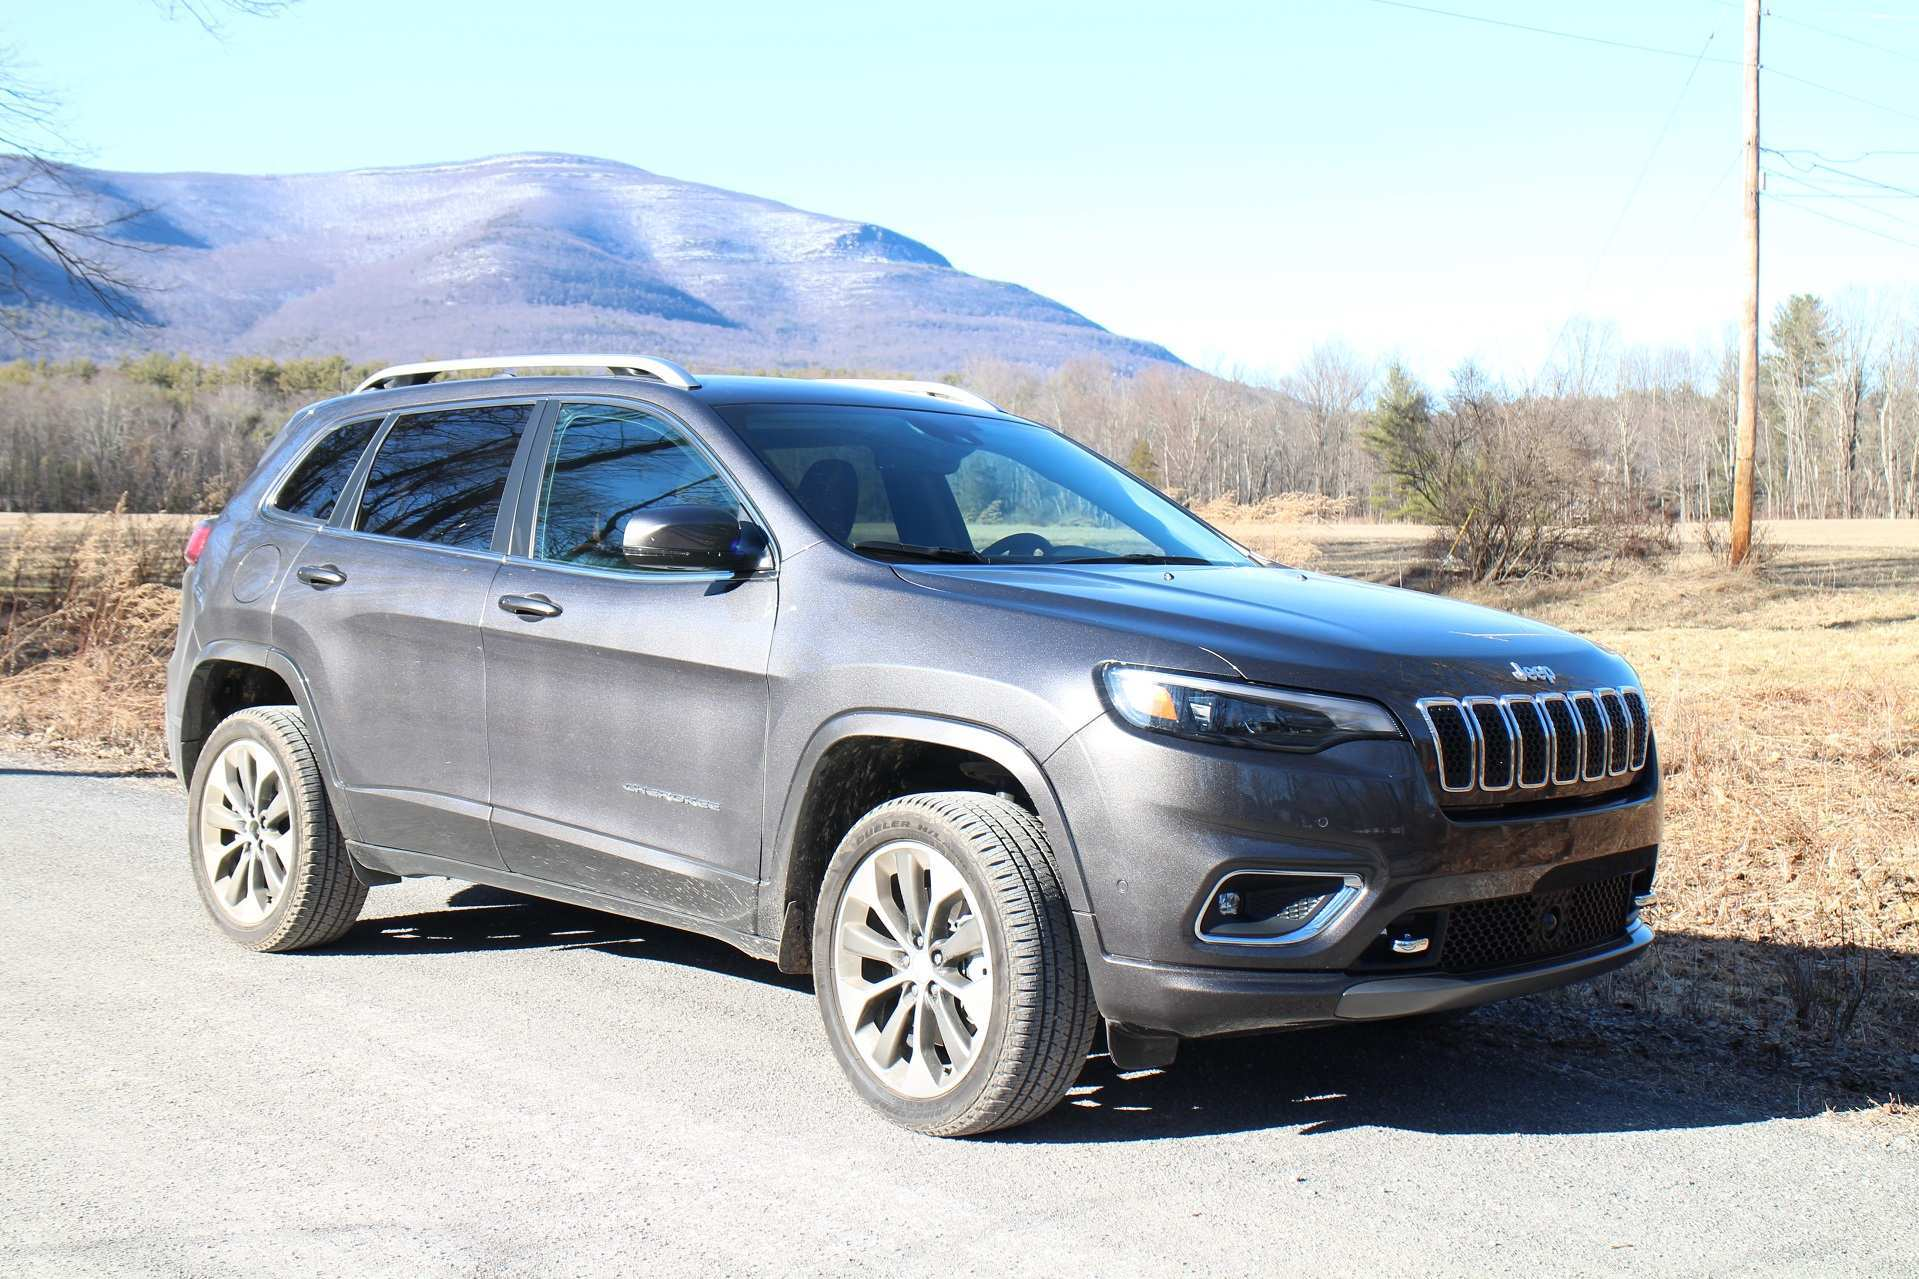 43 Great 2020 BMW Terrain Gas Mileage Picture with 2020 BMW Terrain Gas Mileage